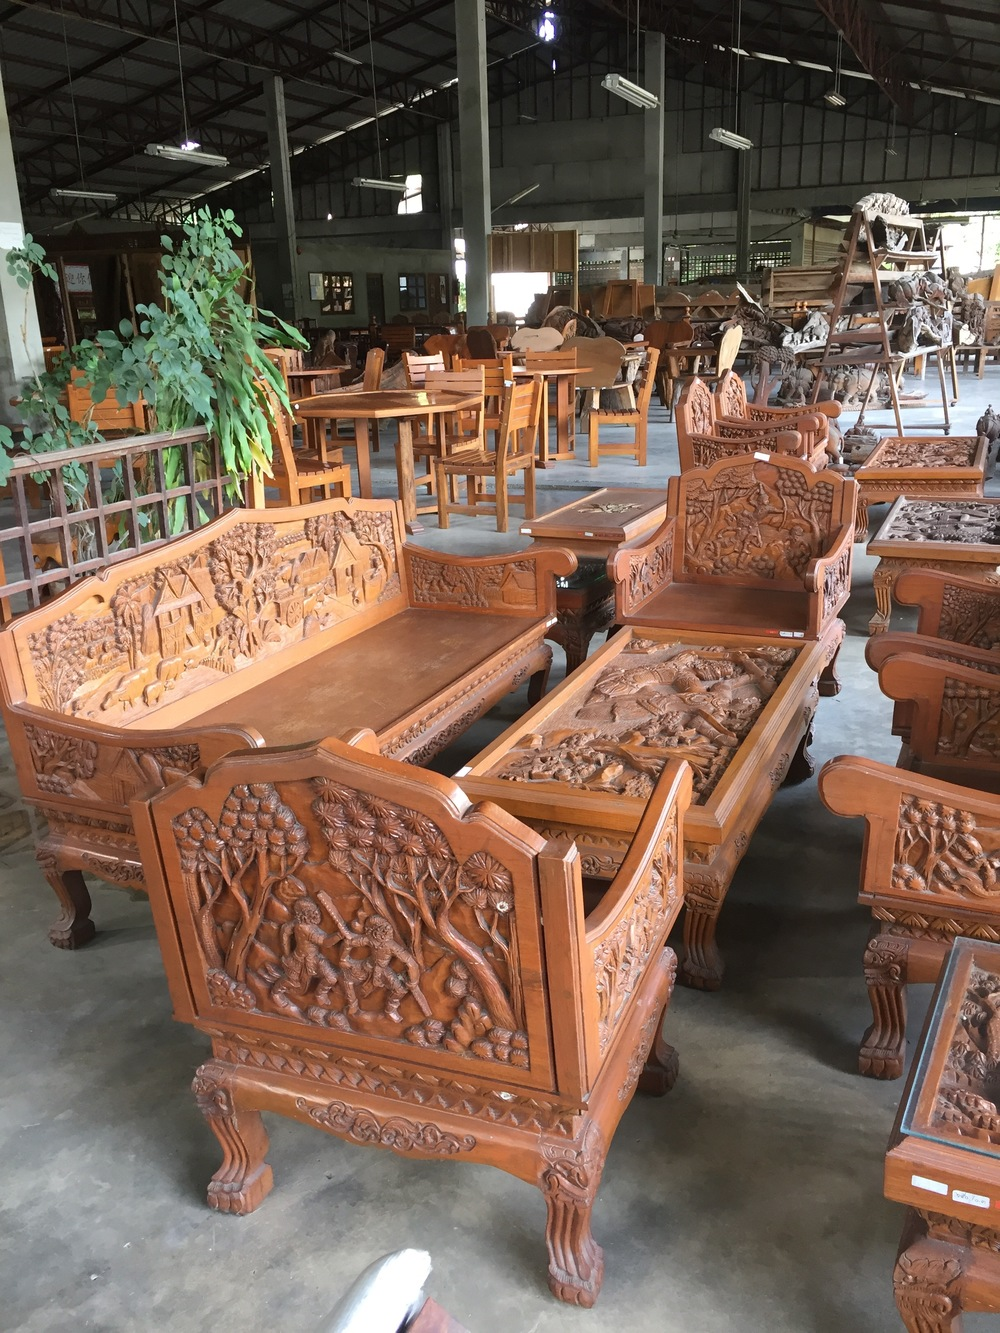 Teak warehouse in Chang Mai where you can buy big, ornate furniture made from teak at discount rates. US tourists are the biggest consumers, according to warehouse personnel.